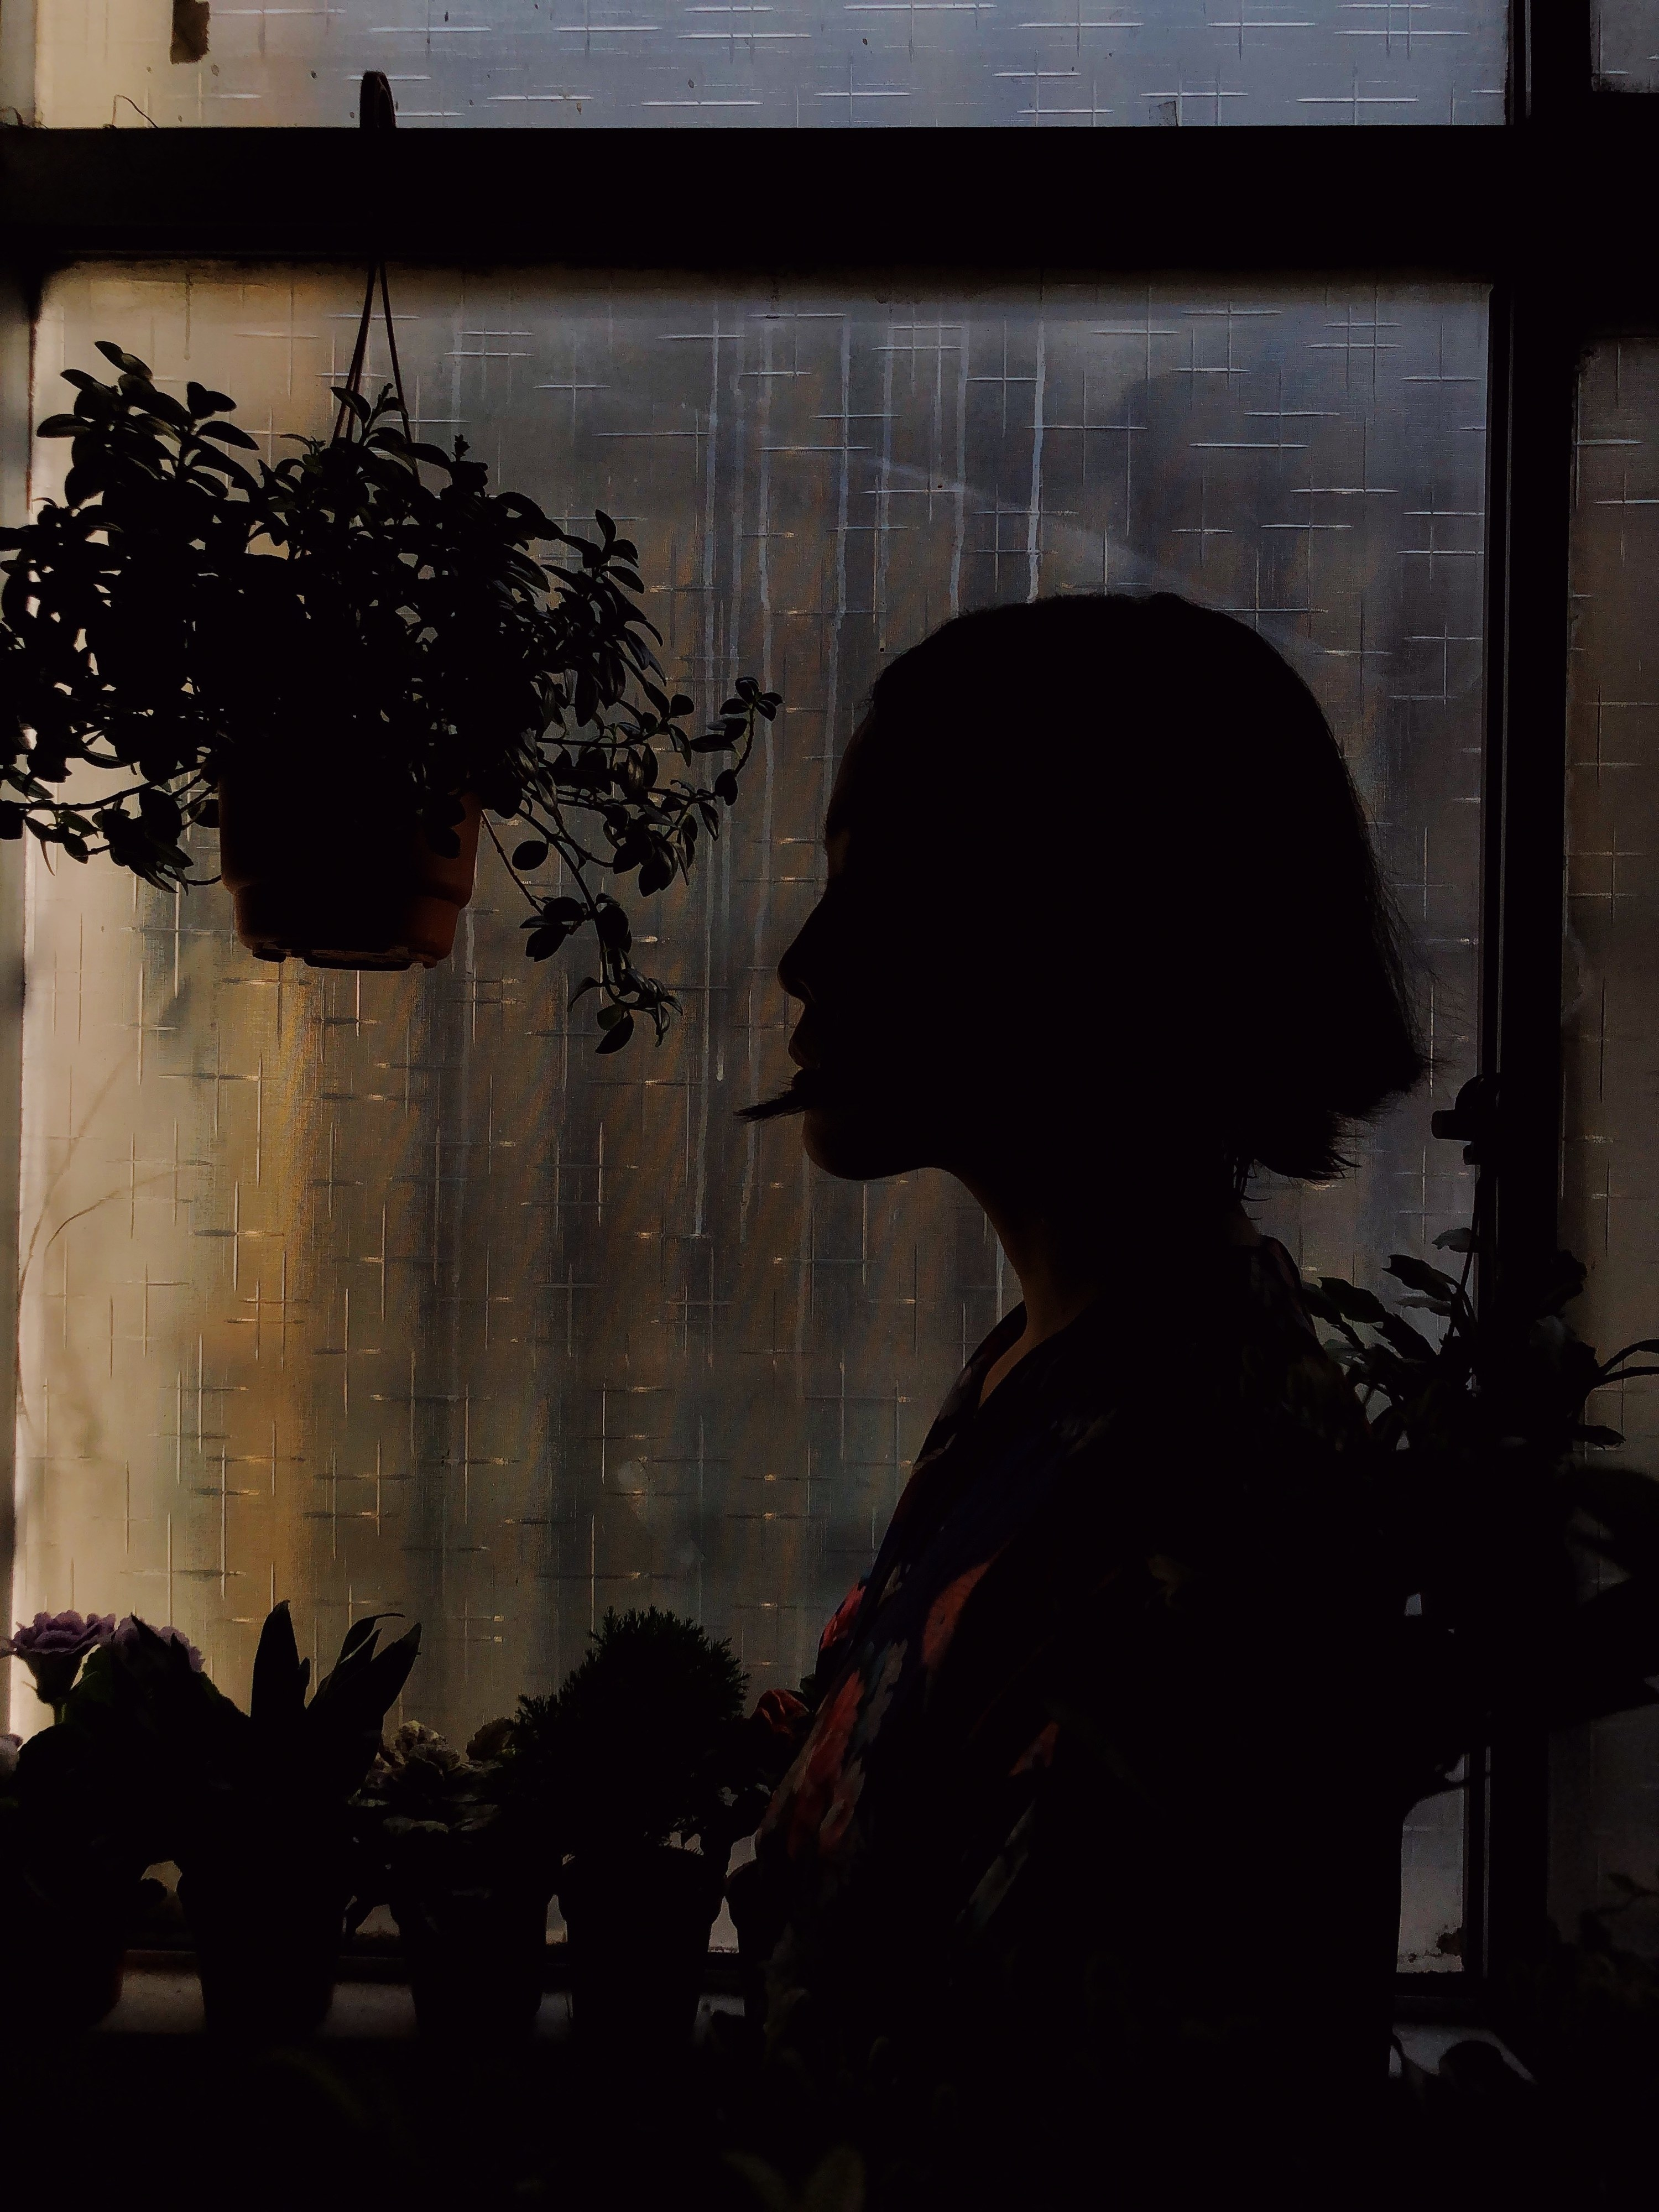 A woman in silhouette in front of a window in the dark